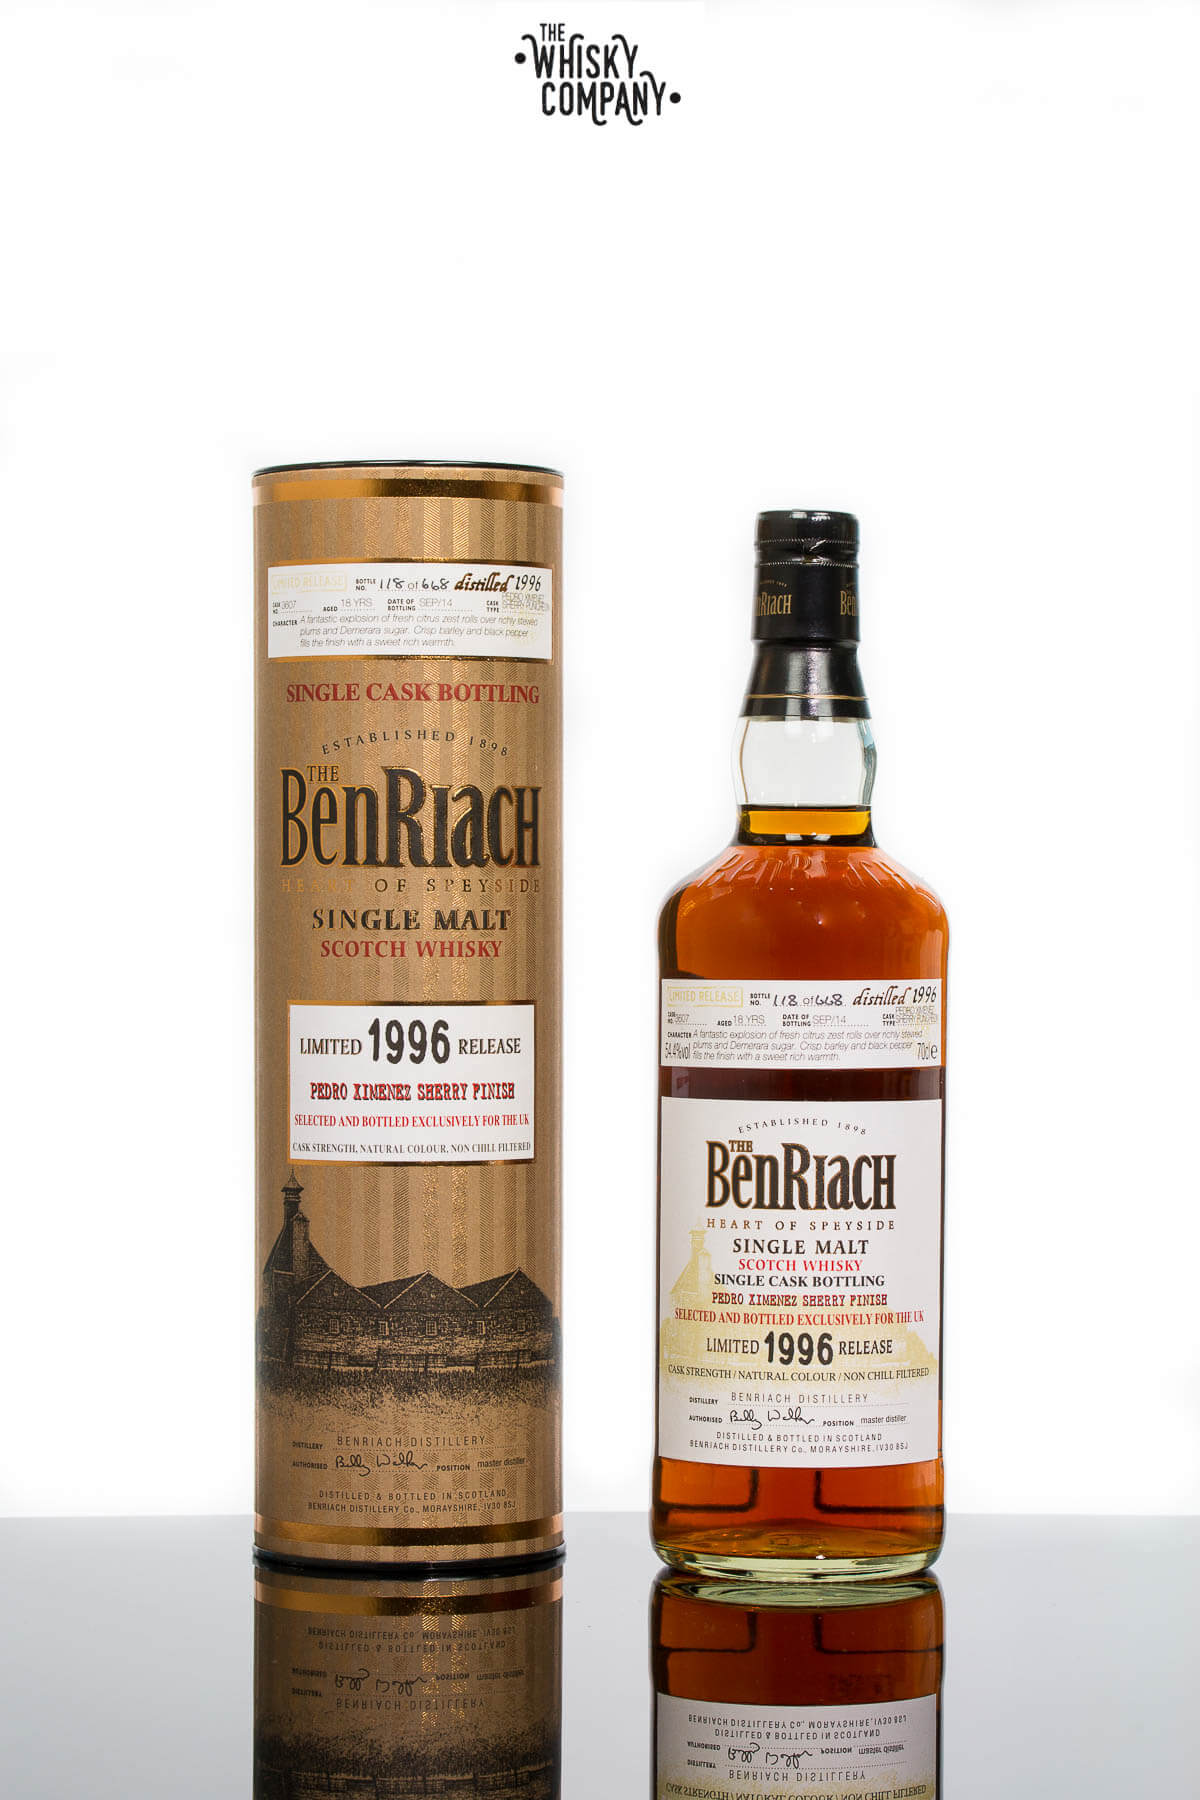 BenRiach Limited Release 1996 Single Cask PX Sherry Finish Speyside Single Malt Whisky (700ml)